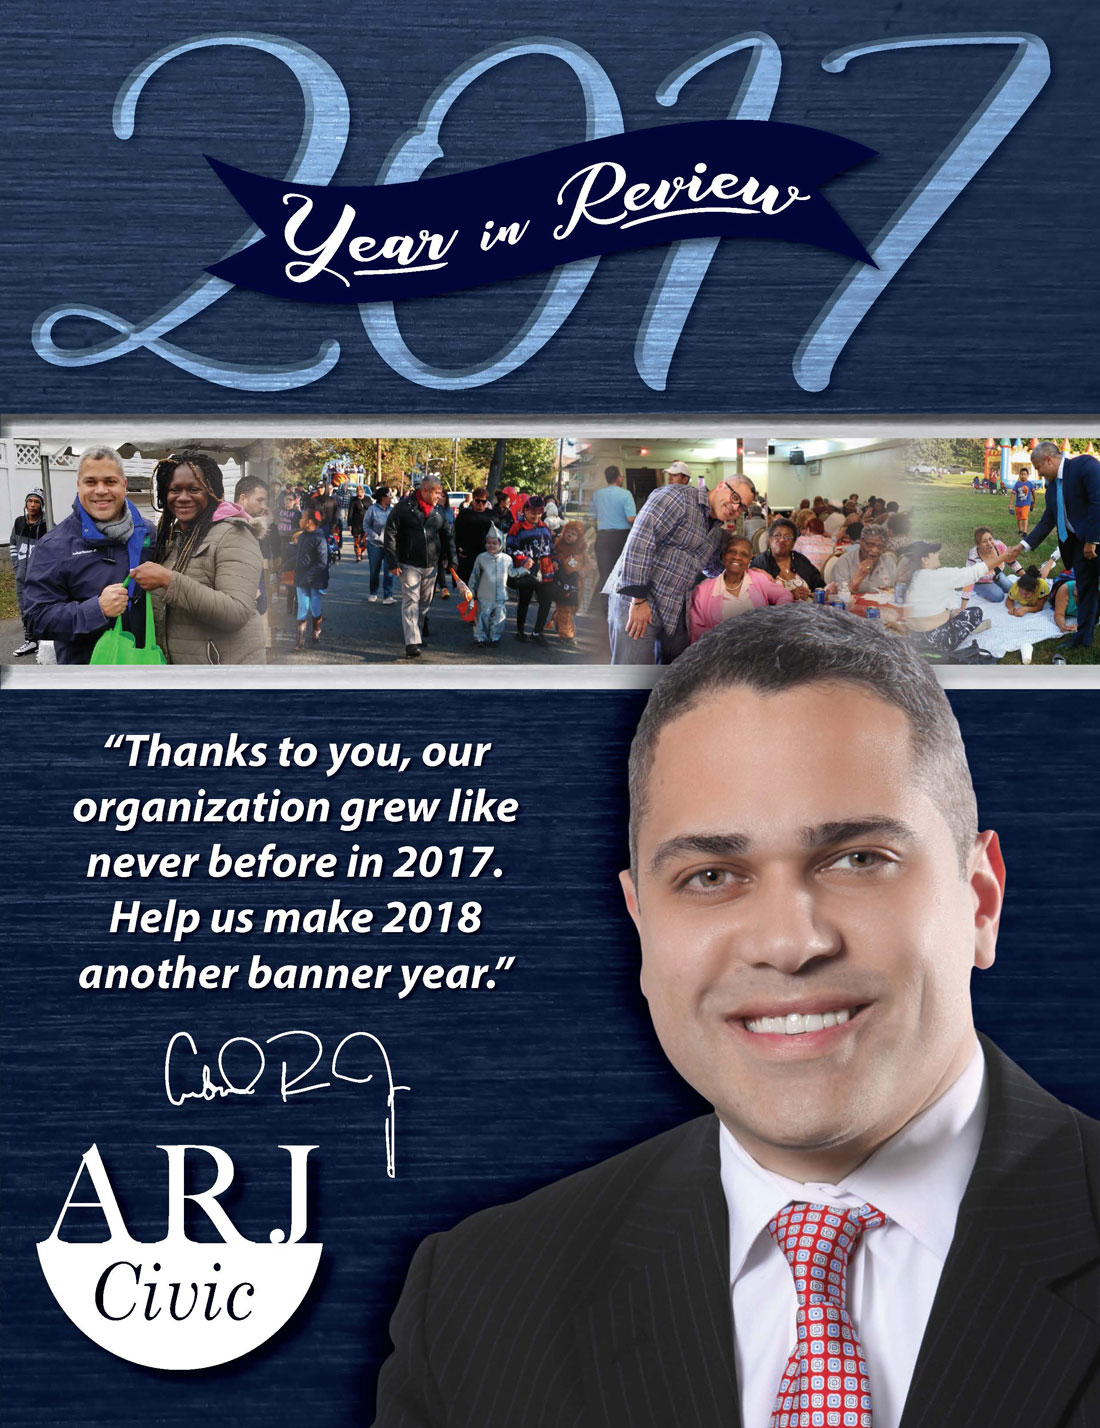 ARJC_2017YearinReview_PRINT_Page_1-800.jpg